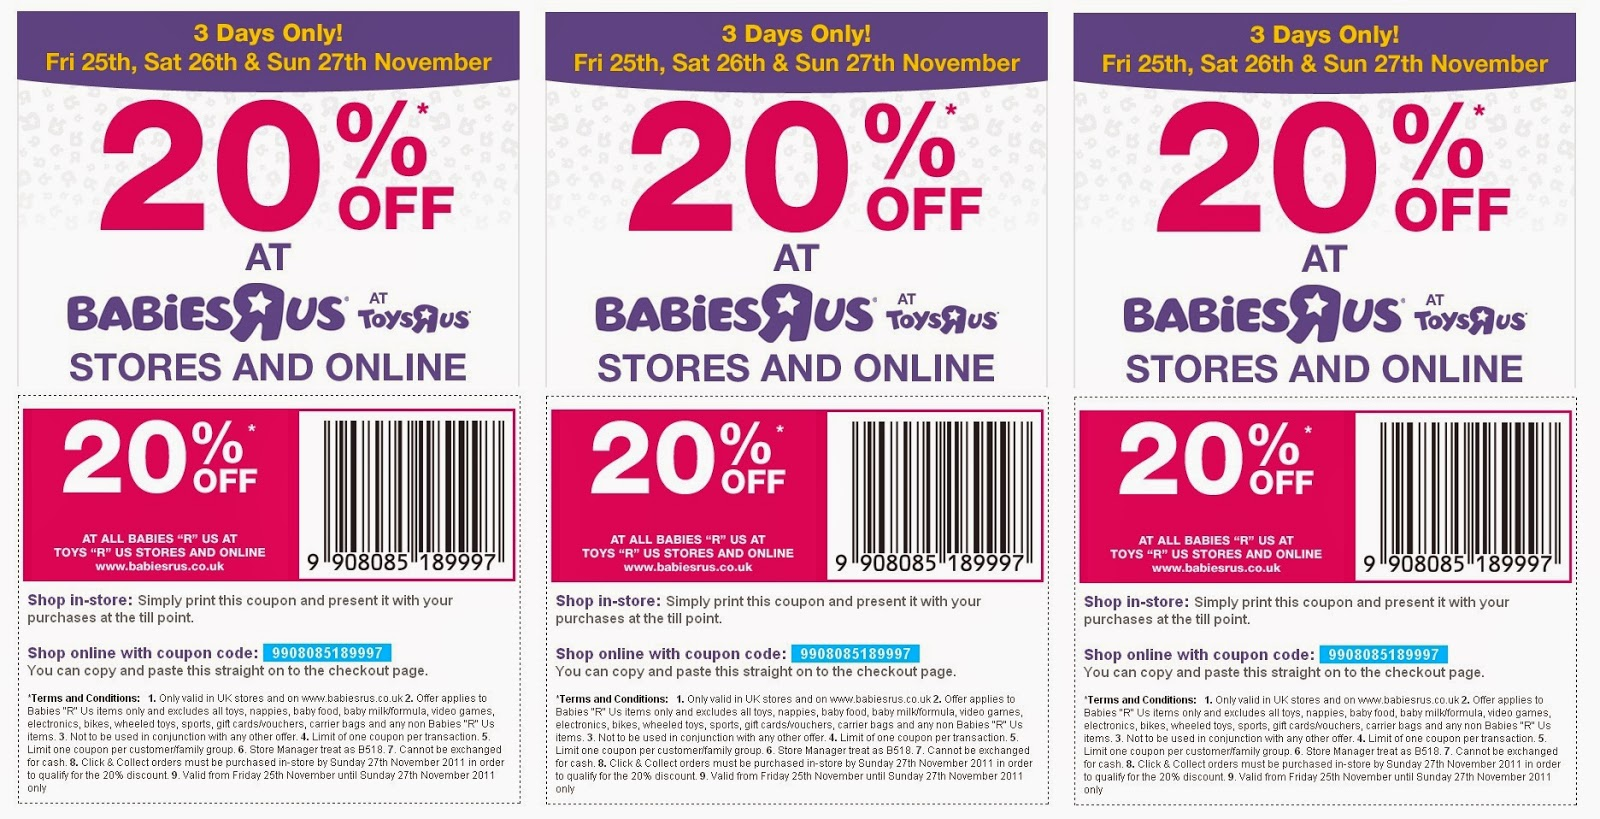 Babies r us coupon code march 2018